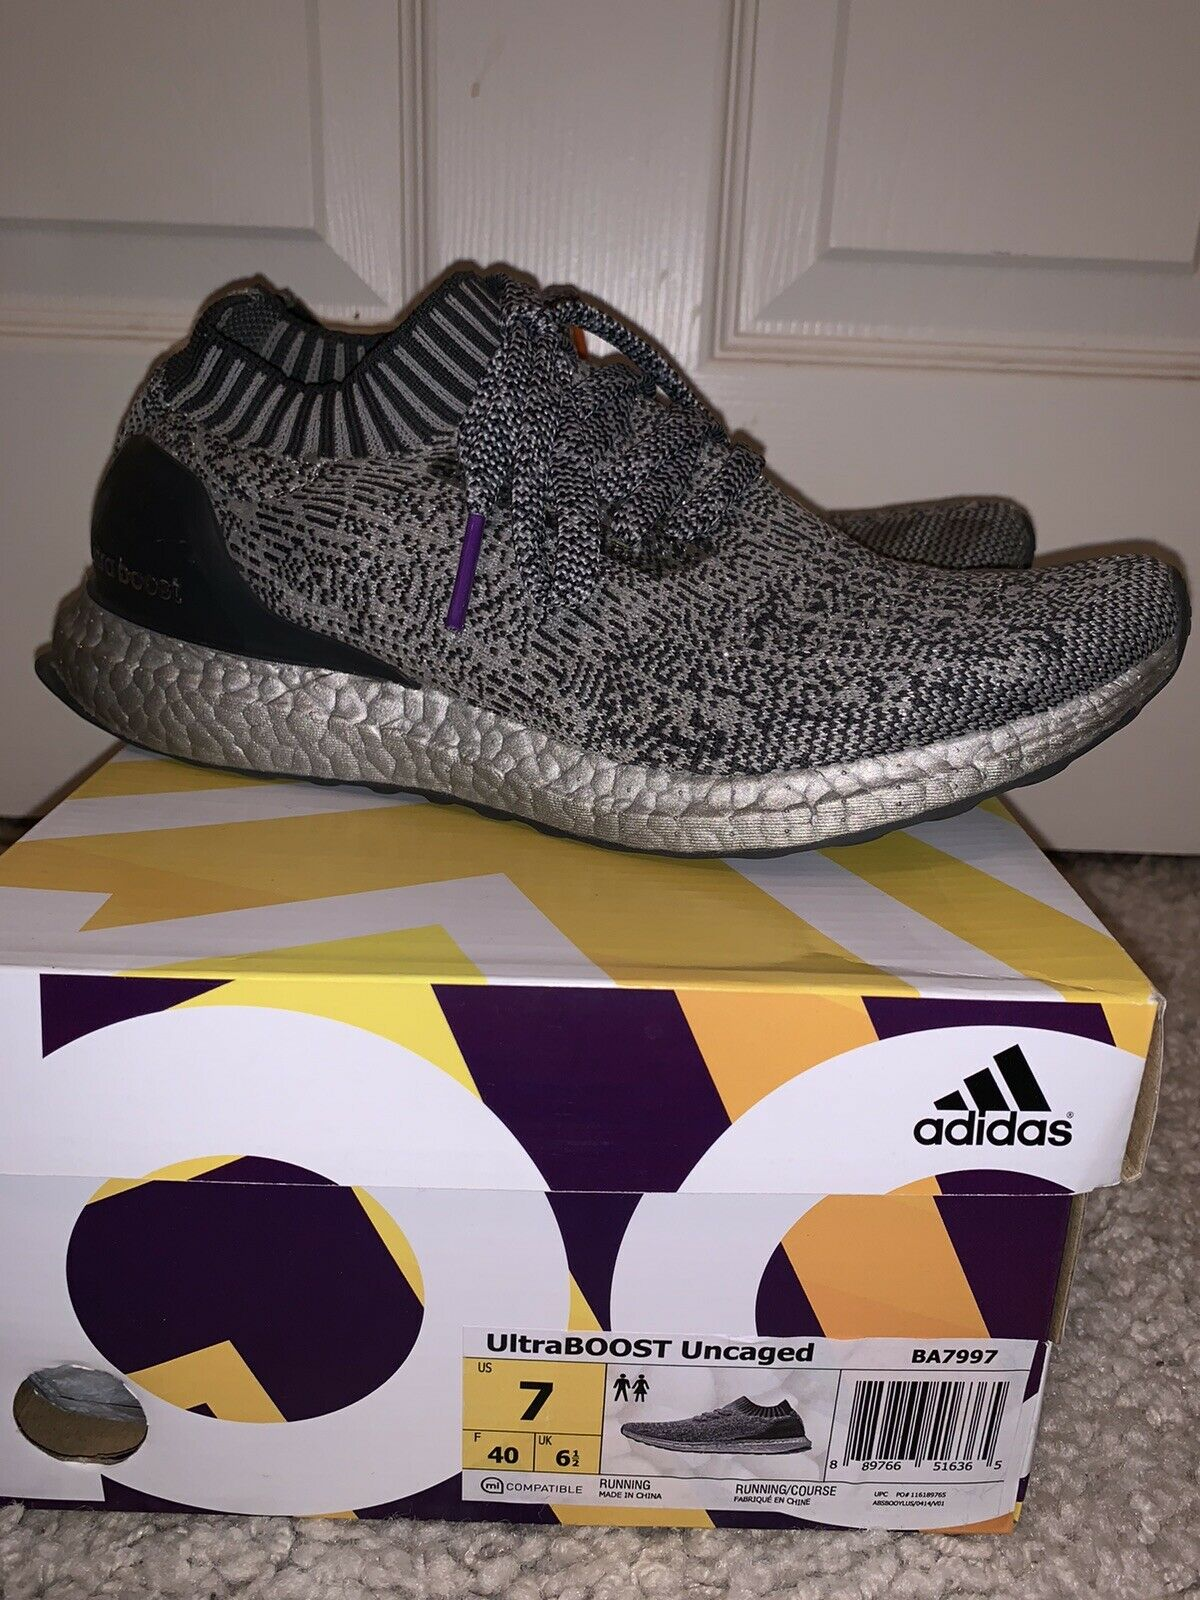 adidas Ultra Boost Uncaged Super Bowl